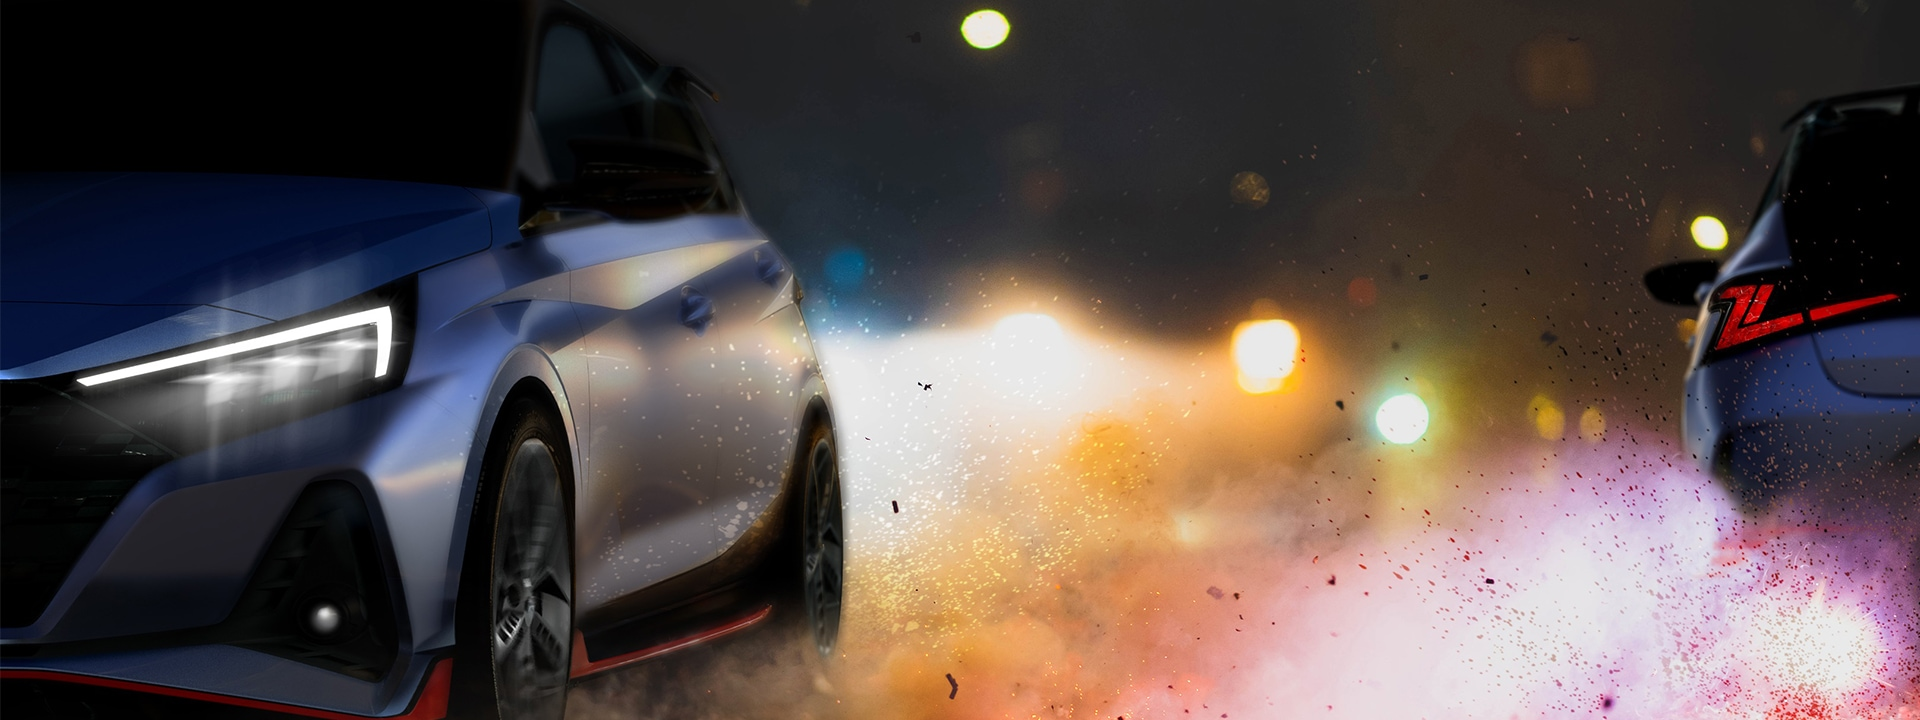 Hyundai Motor reveals teaser of latest high-performance model, the all-new i20 N.